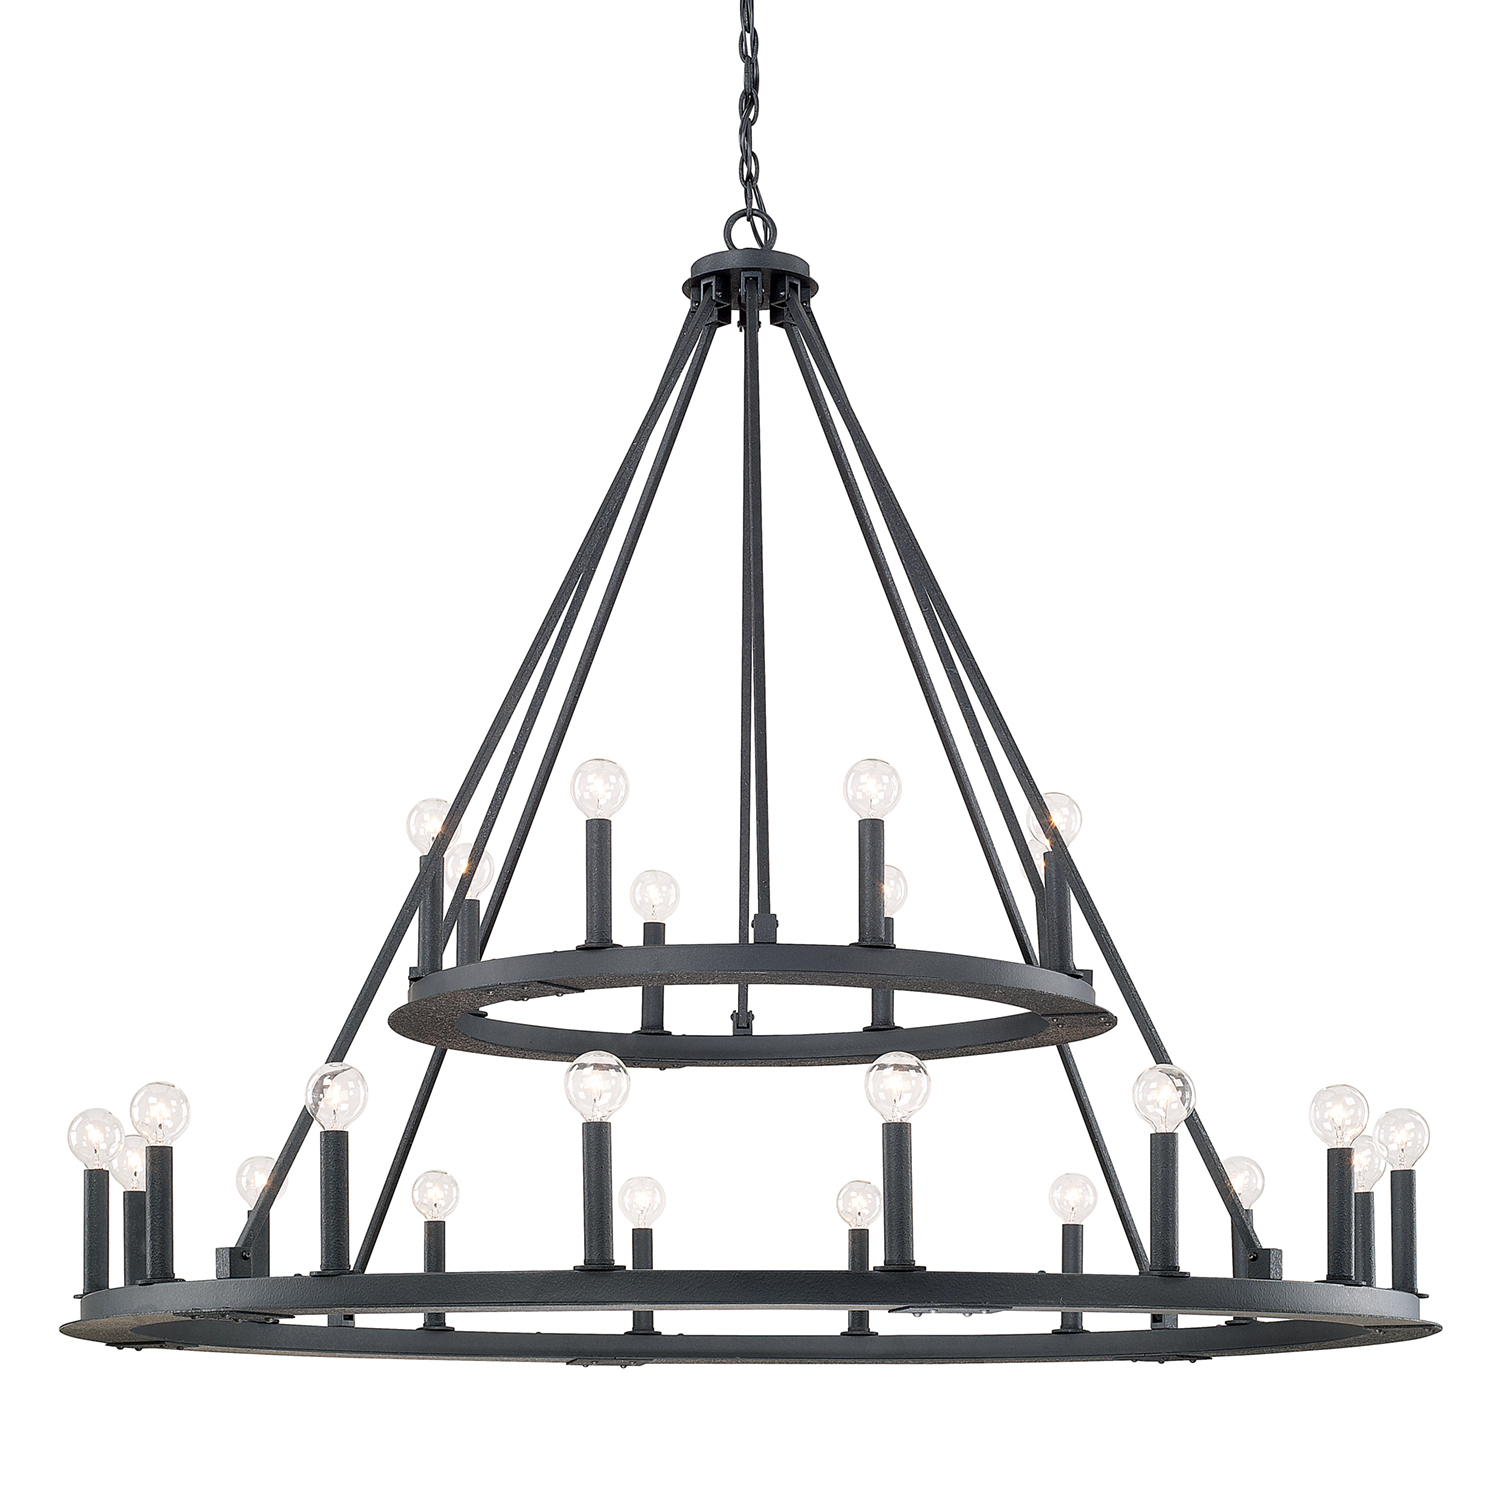 24 Light Chandelier from the Pearson collection by Capital Lighting 4910BI